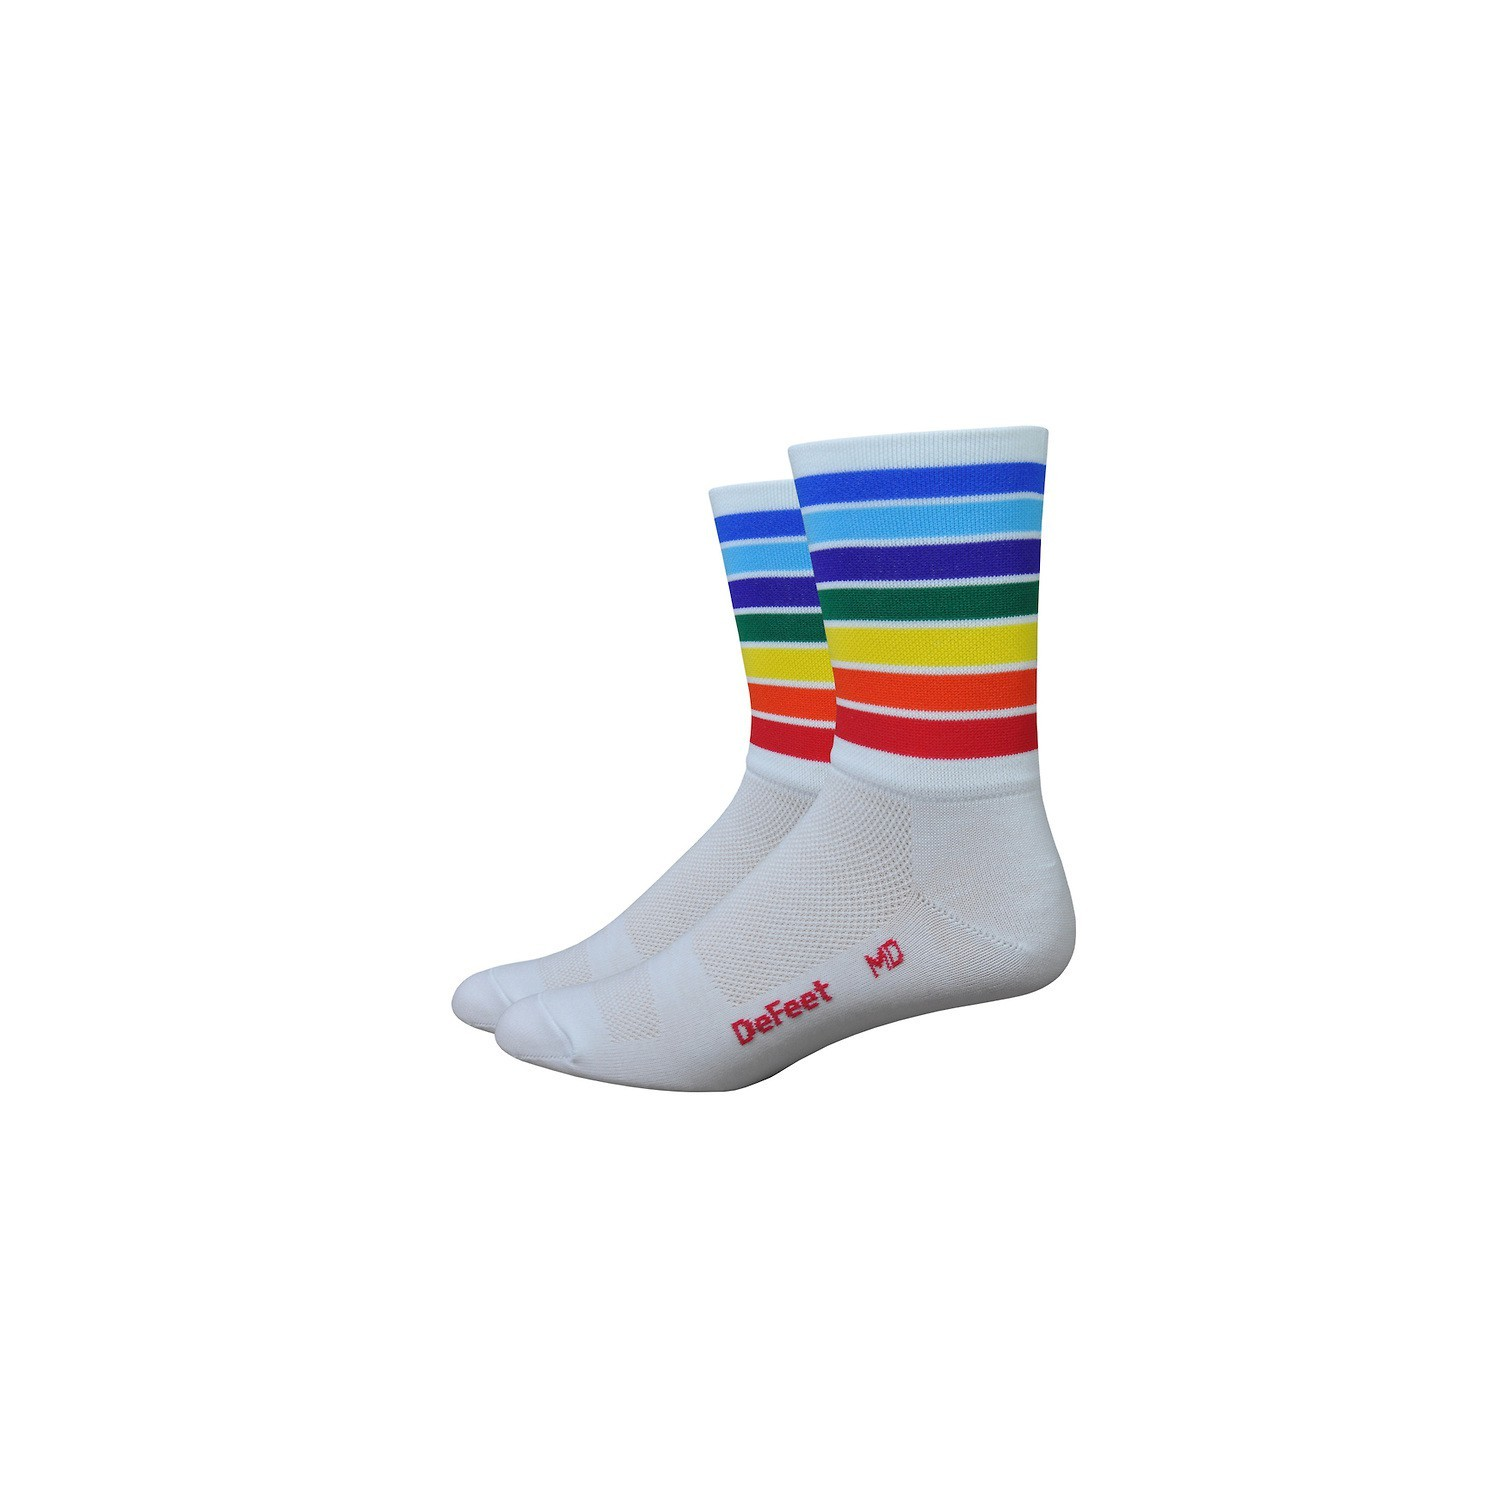 buy good nice cheap so cheap Chaussettes DeFeet Aireator Champion of the world blanc - Velo-Perso.com